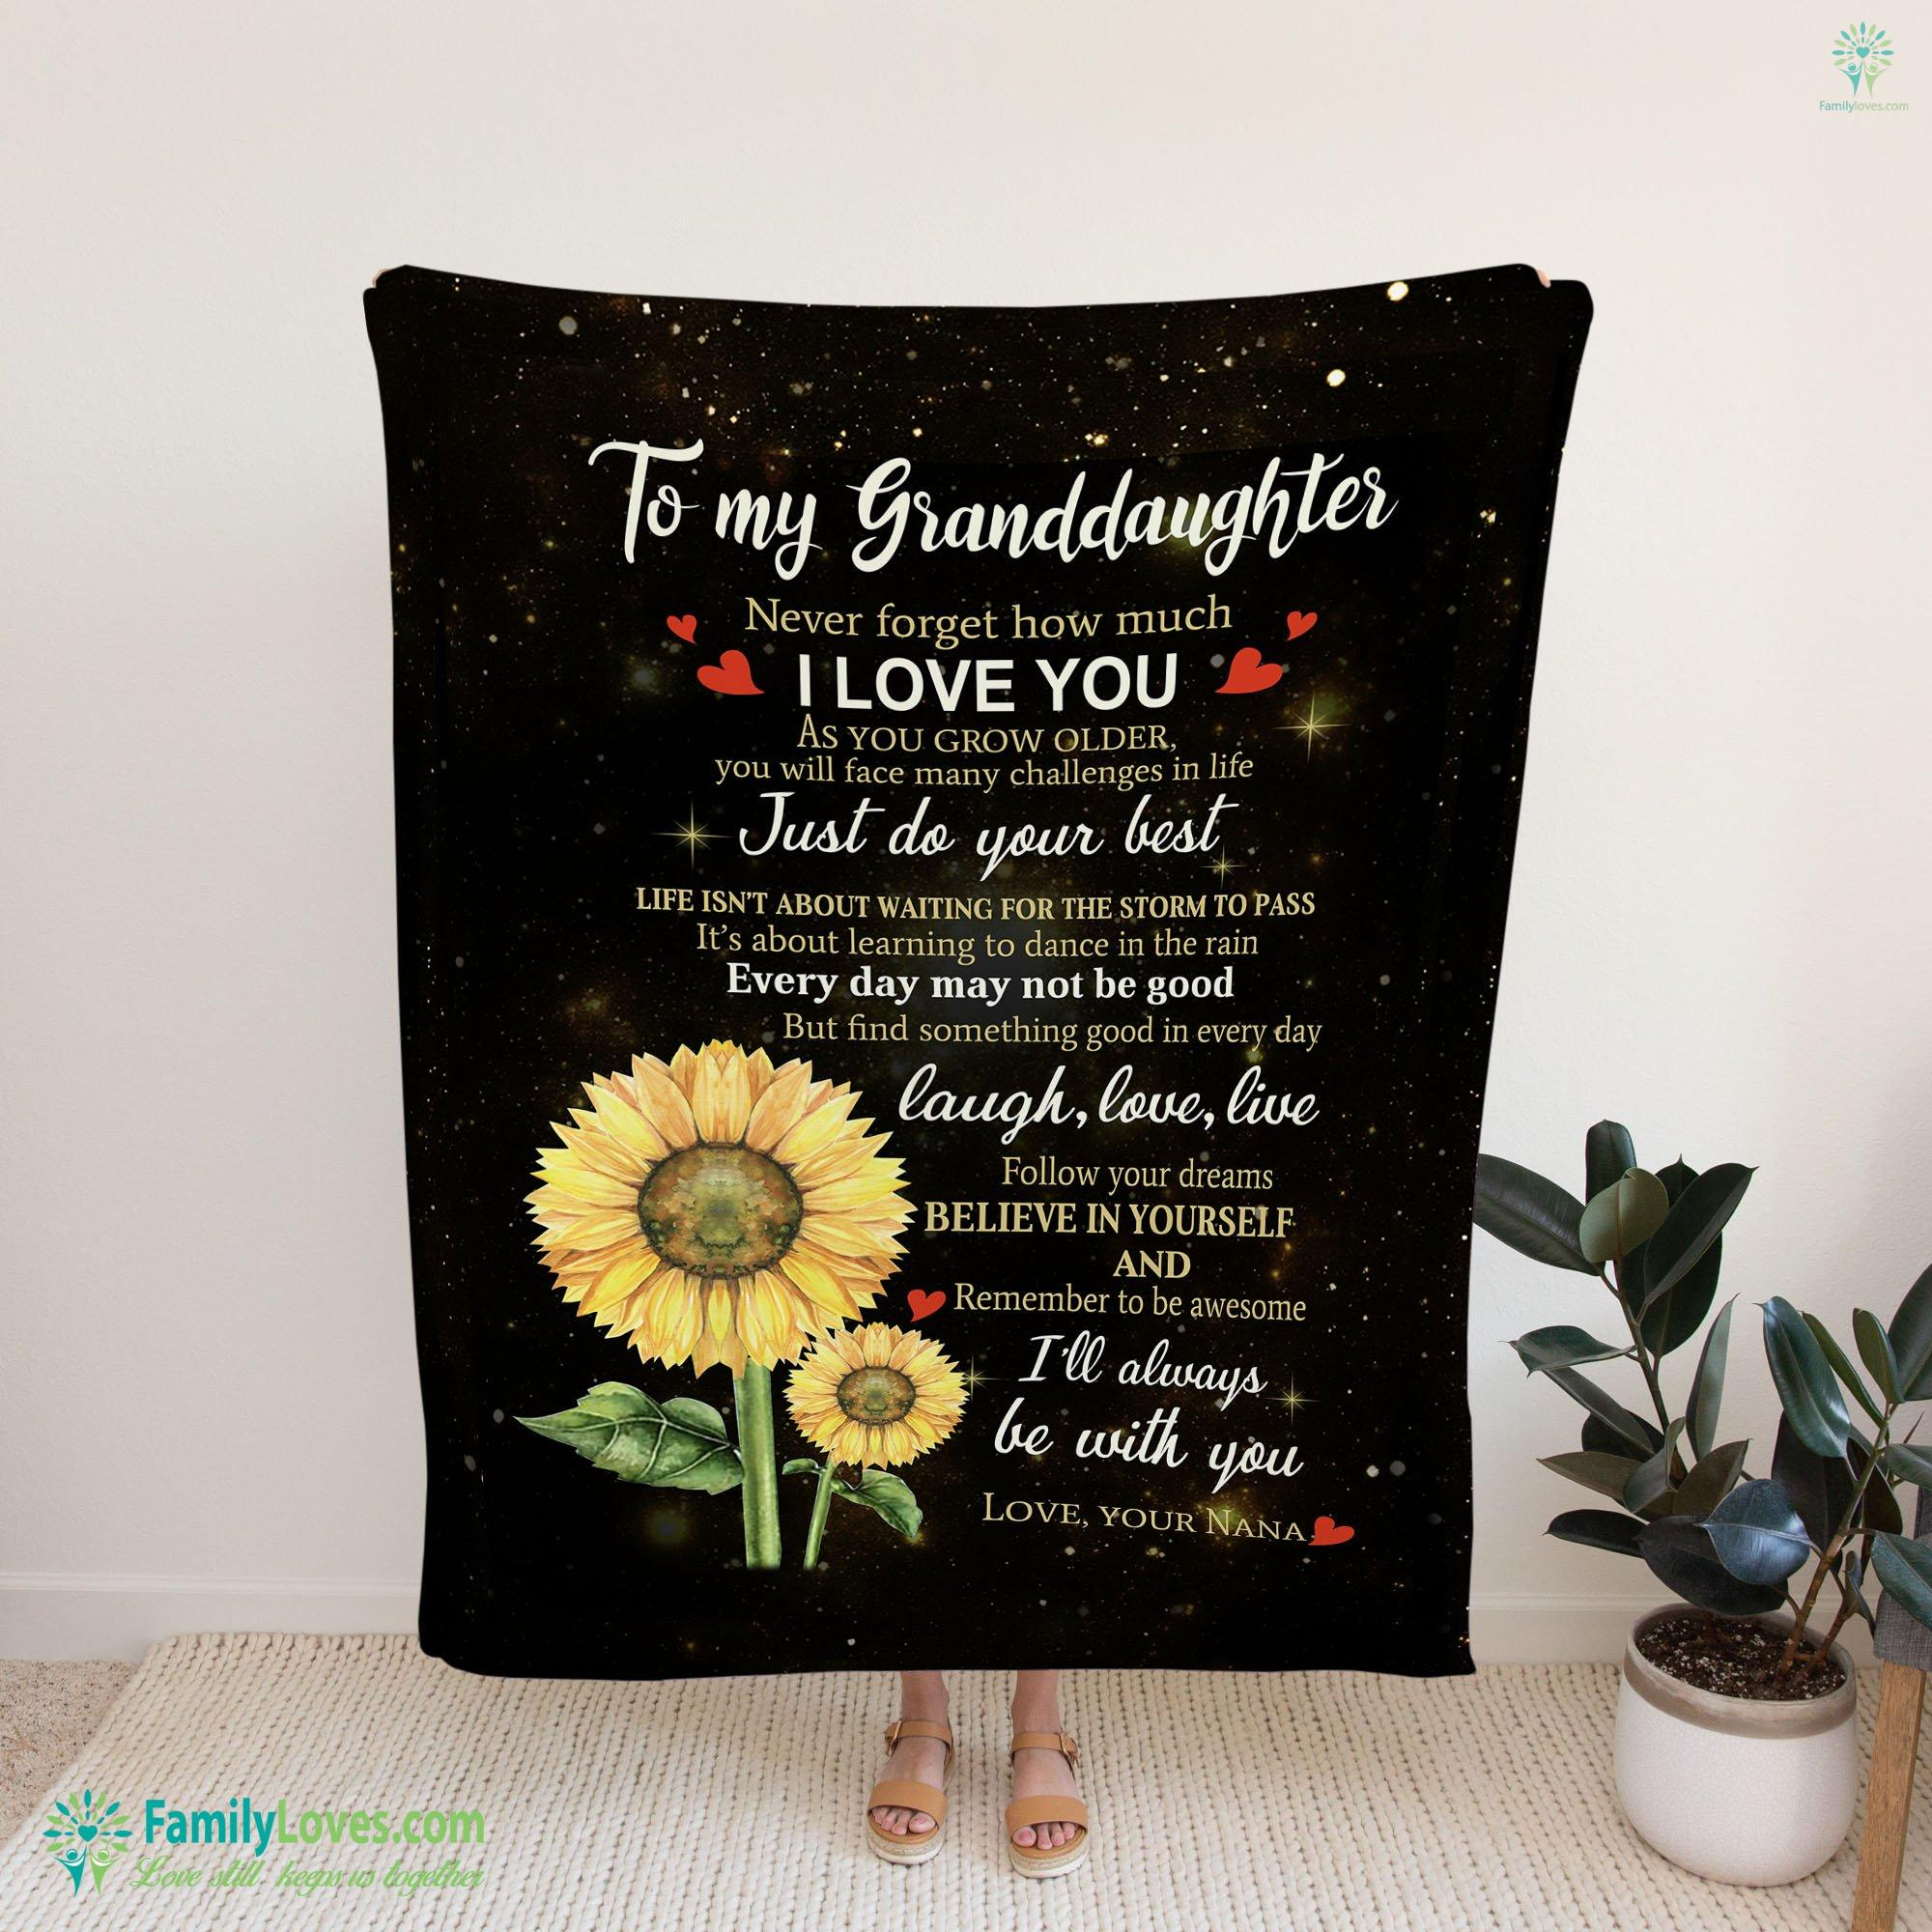 To My Granddaughter Never Forget How Much I Love You Blanket 12 Familyloves.com